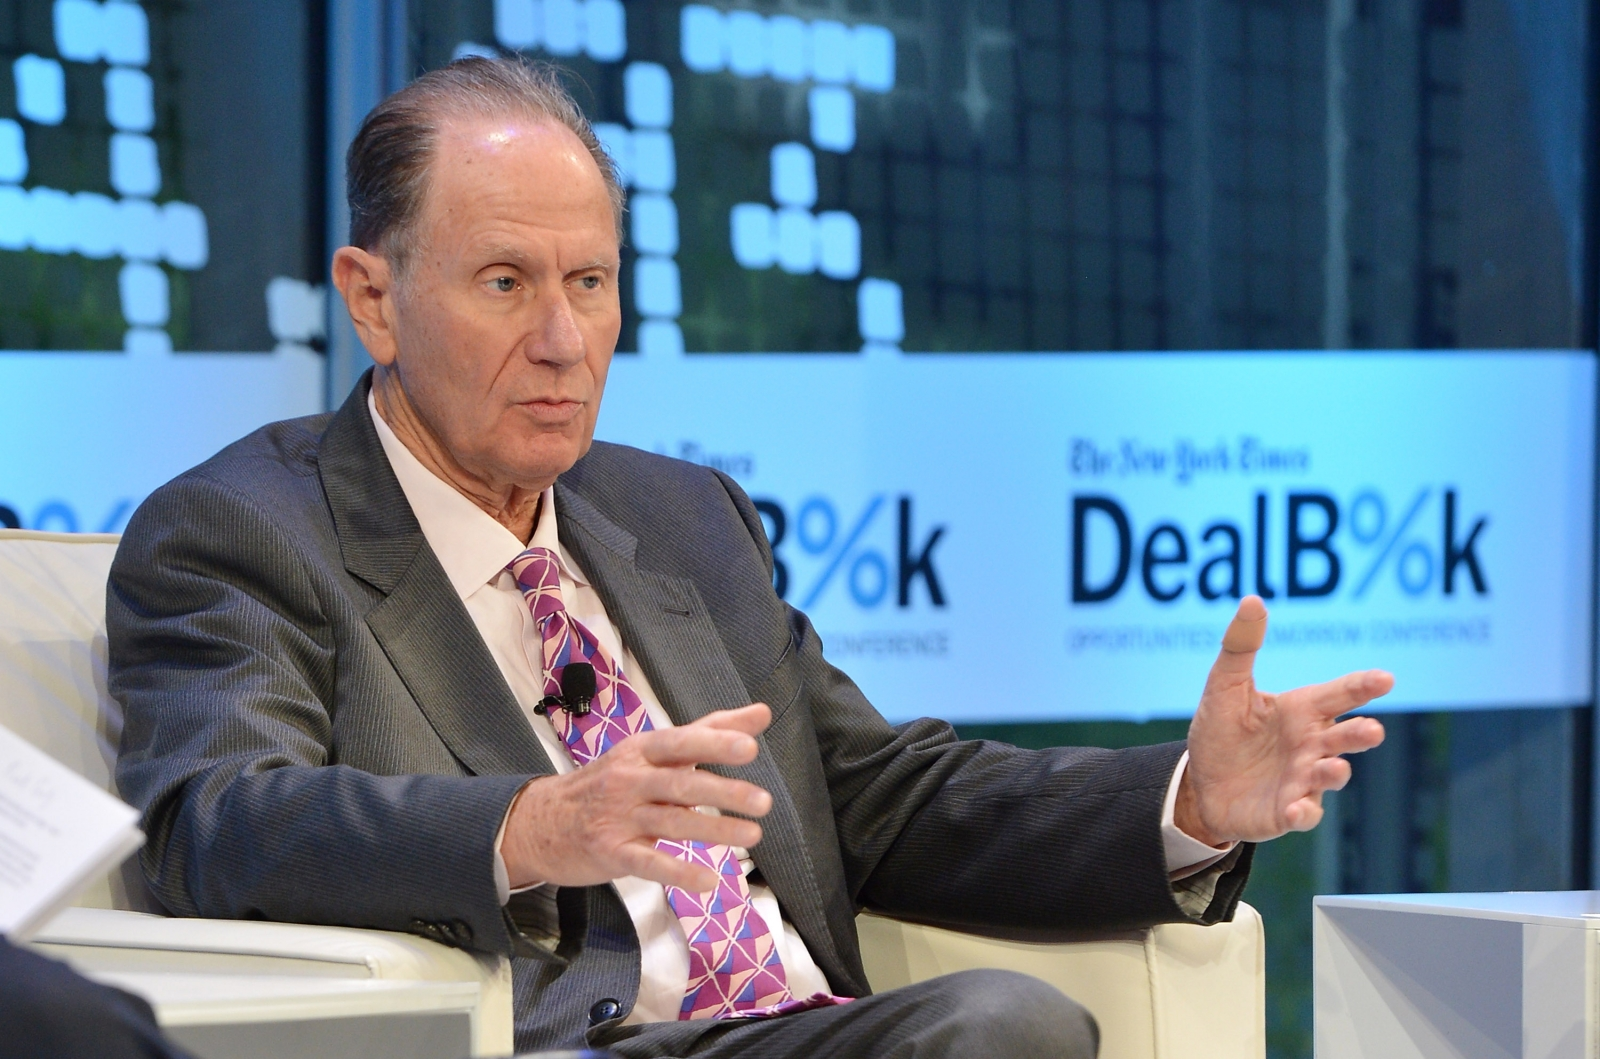 Who is David Bonderman